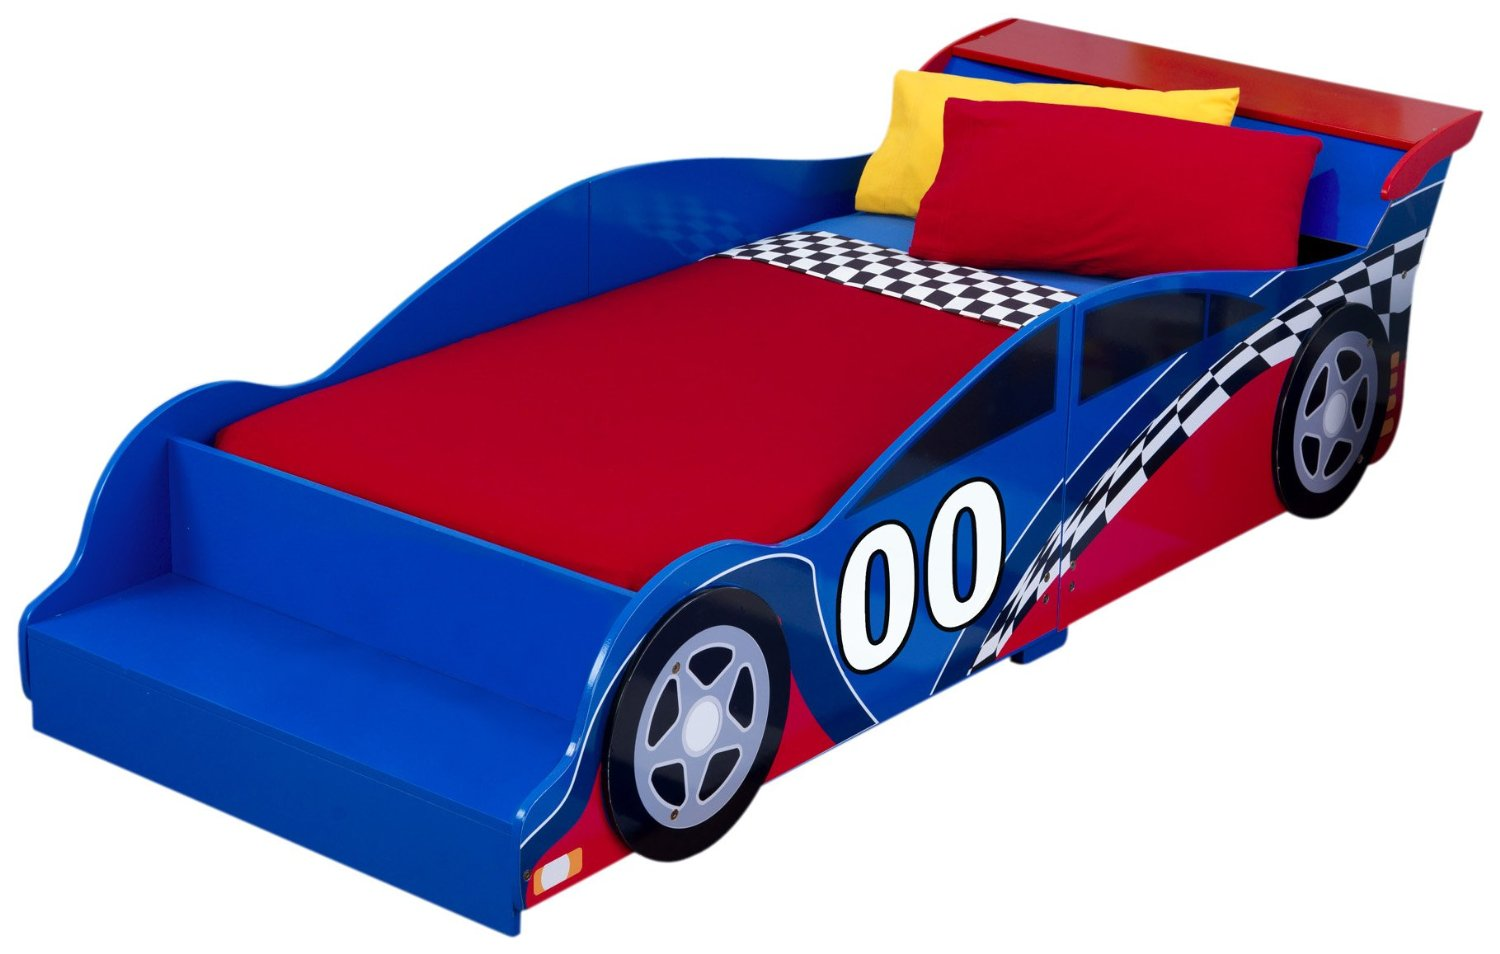 Picture of: Race Car Toddler Bed Image